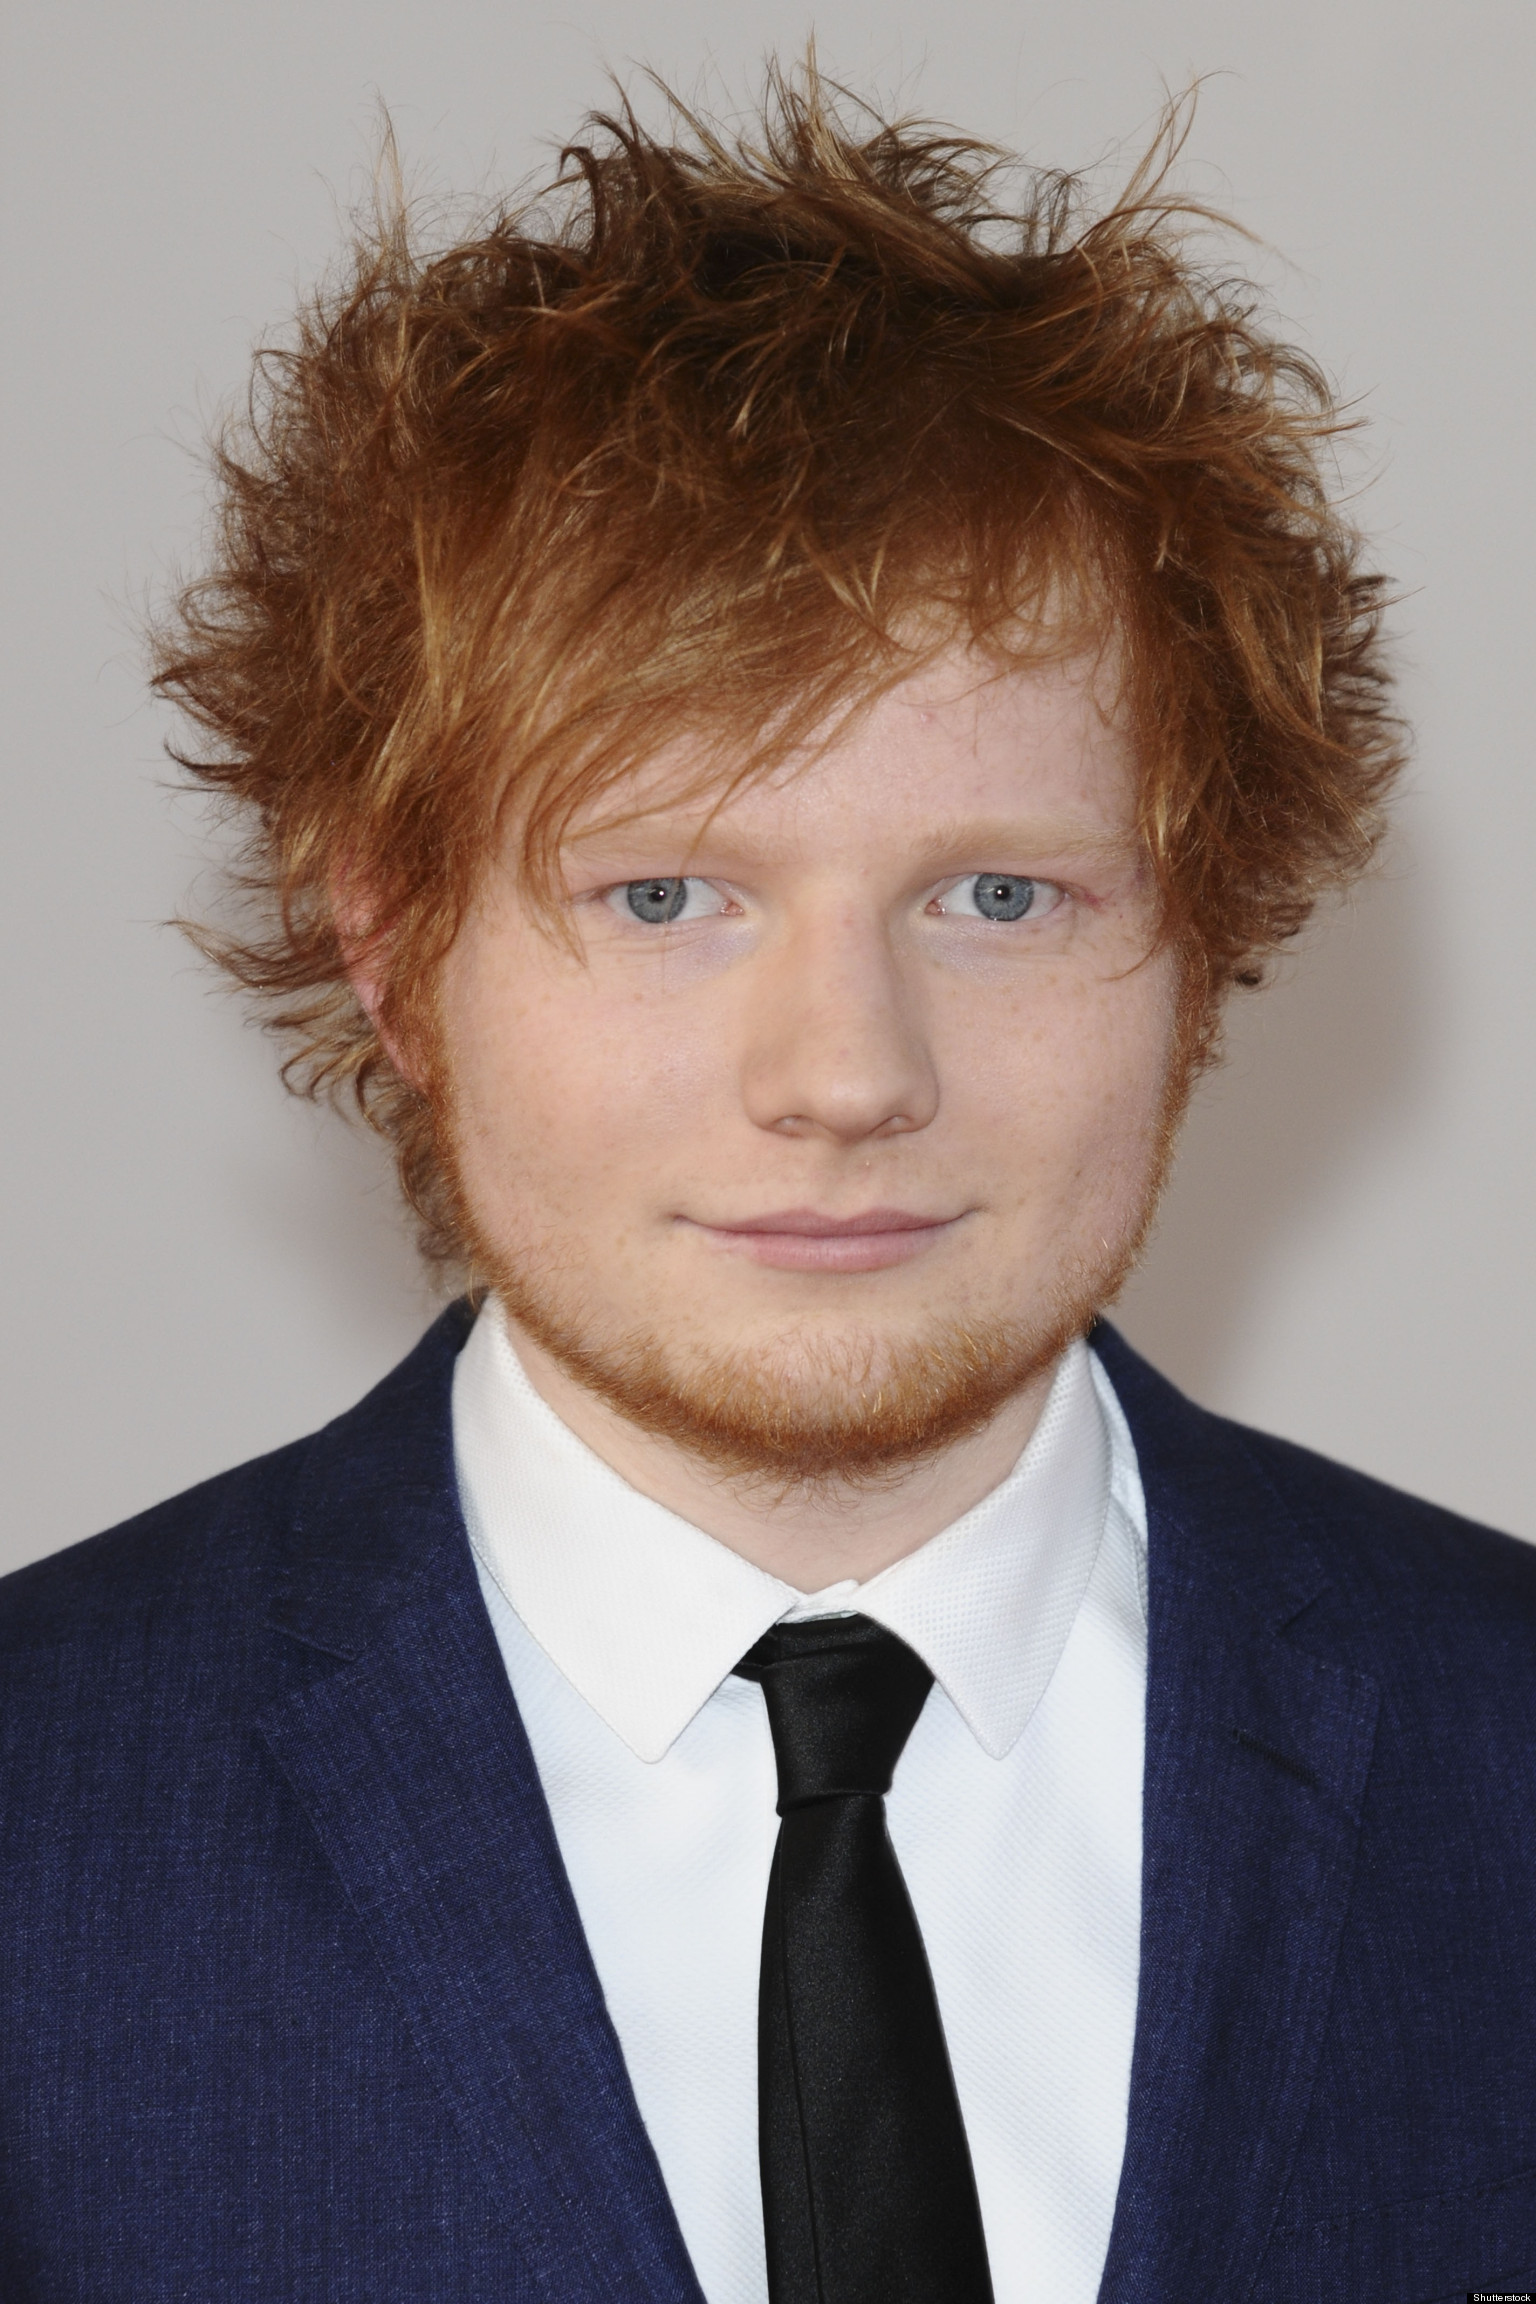 ed sheeran - photo #1